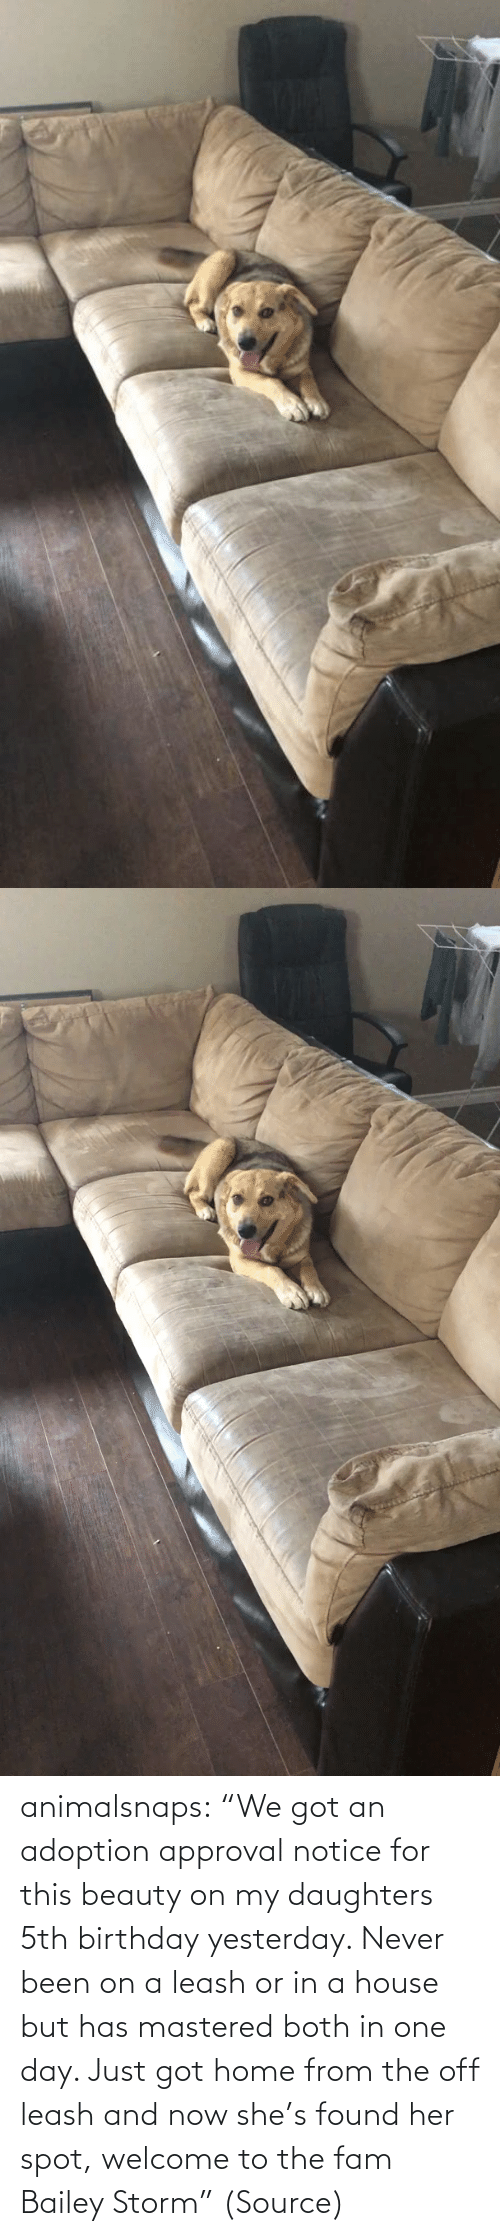 "welcome: animalsnaps:  ""We got an adoption approval notice for this beauty on my daughters 5th birthday yesterday. Never been on a leash or in a house but has mastered both in one day. Just got home from the off leash and now she's found her spot, welcome to the fam Bailey Storm"" (Source)"